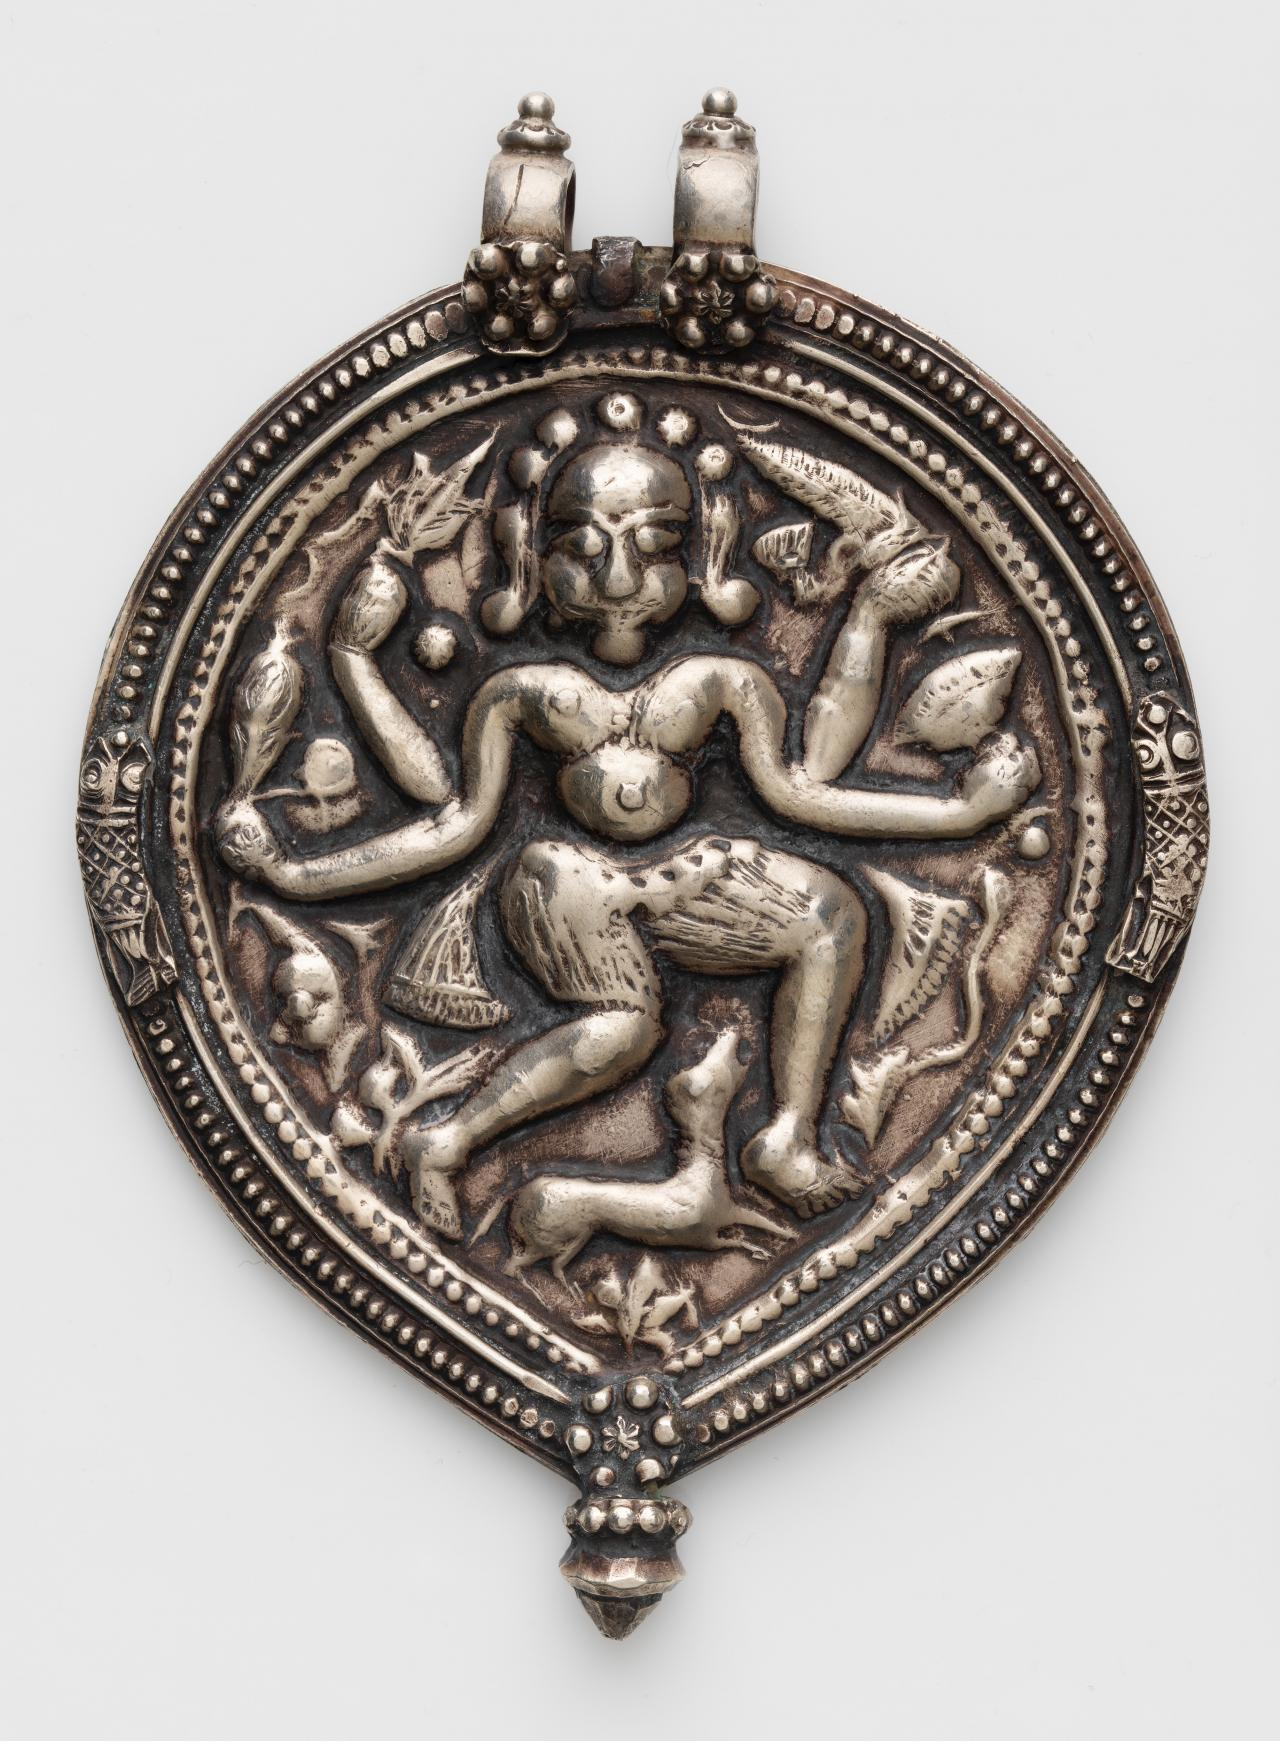 Pilgrimage and devotional pendant (Phul) with Shiva as Bhairava